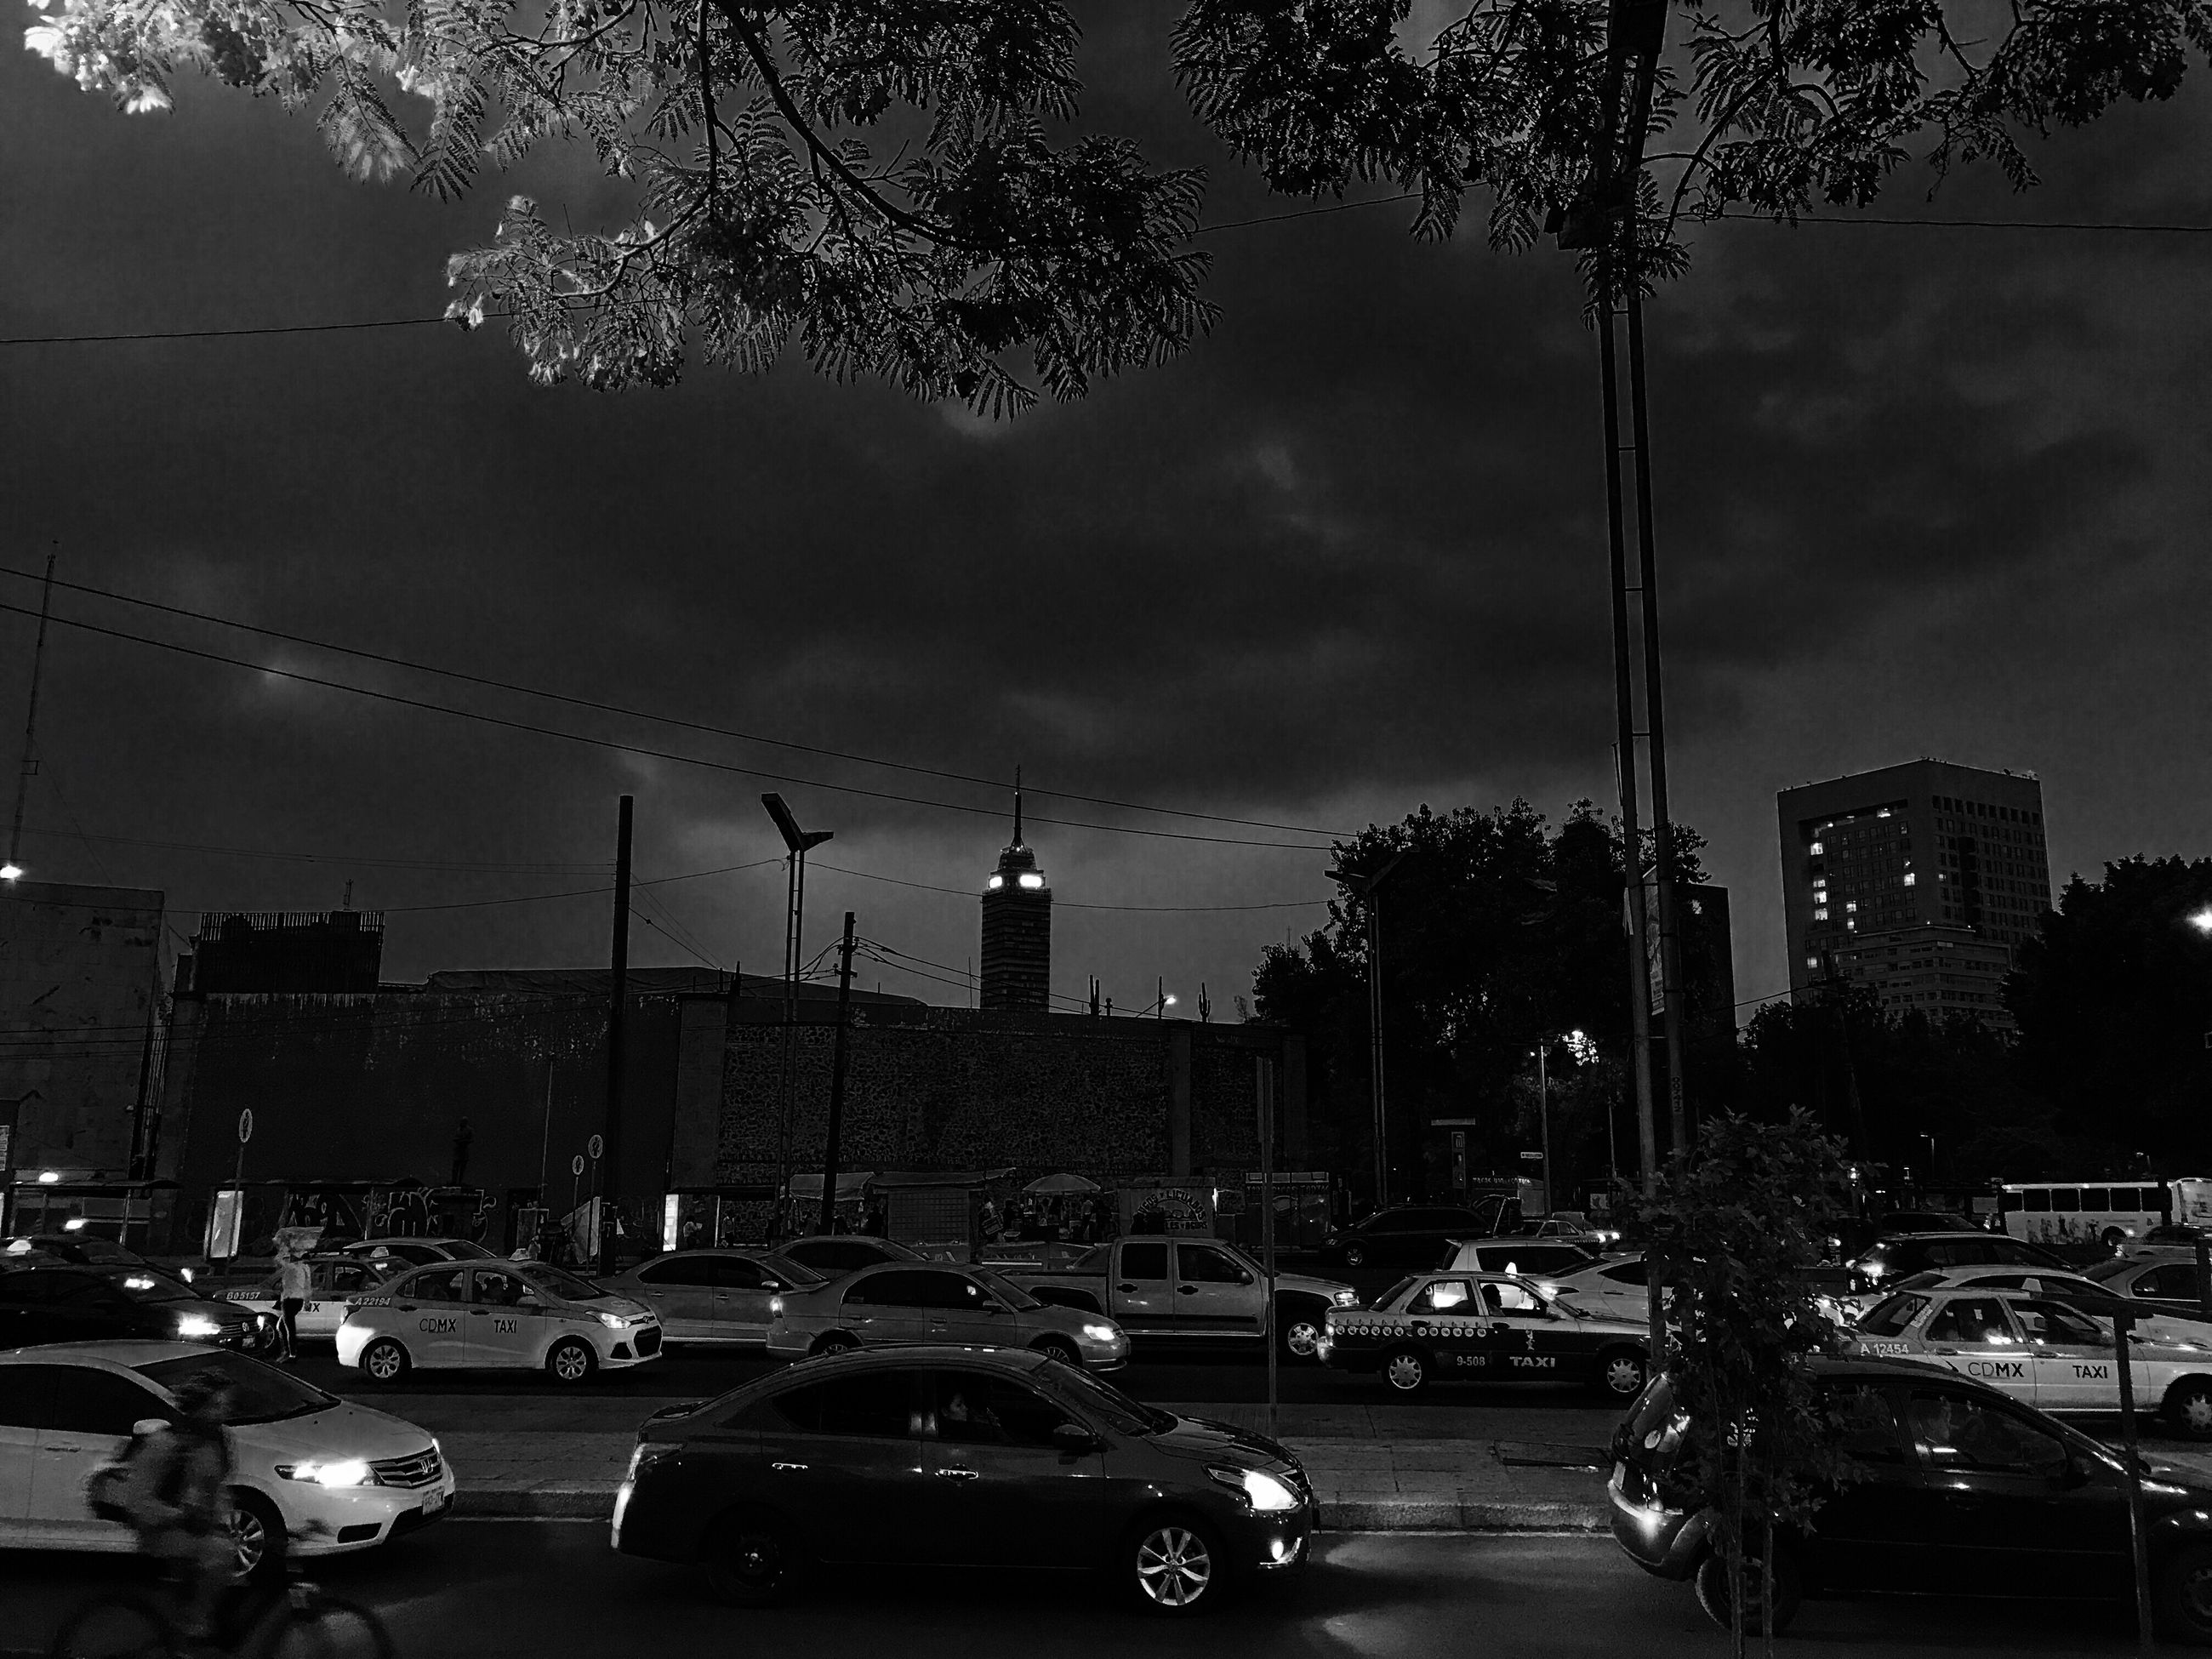 car, city, architecture, building exterior, built structure, transportation, land vehicle, road, street, traffic, illuminated, city life, sky, outdoors, tree, night, street light, cityscape, skyscraper, modern, no people